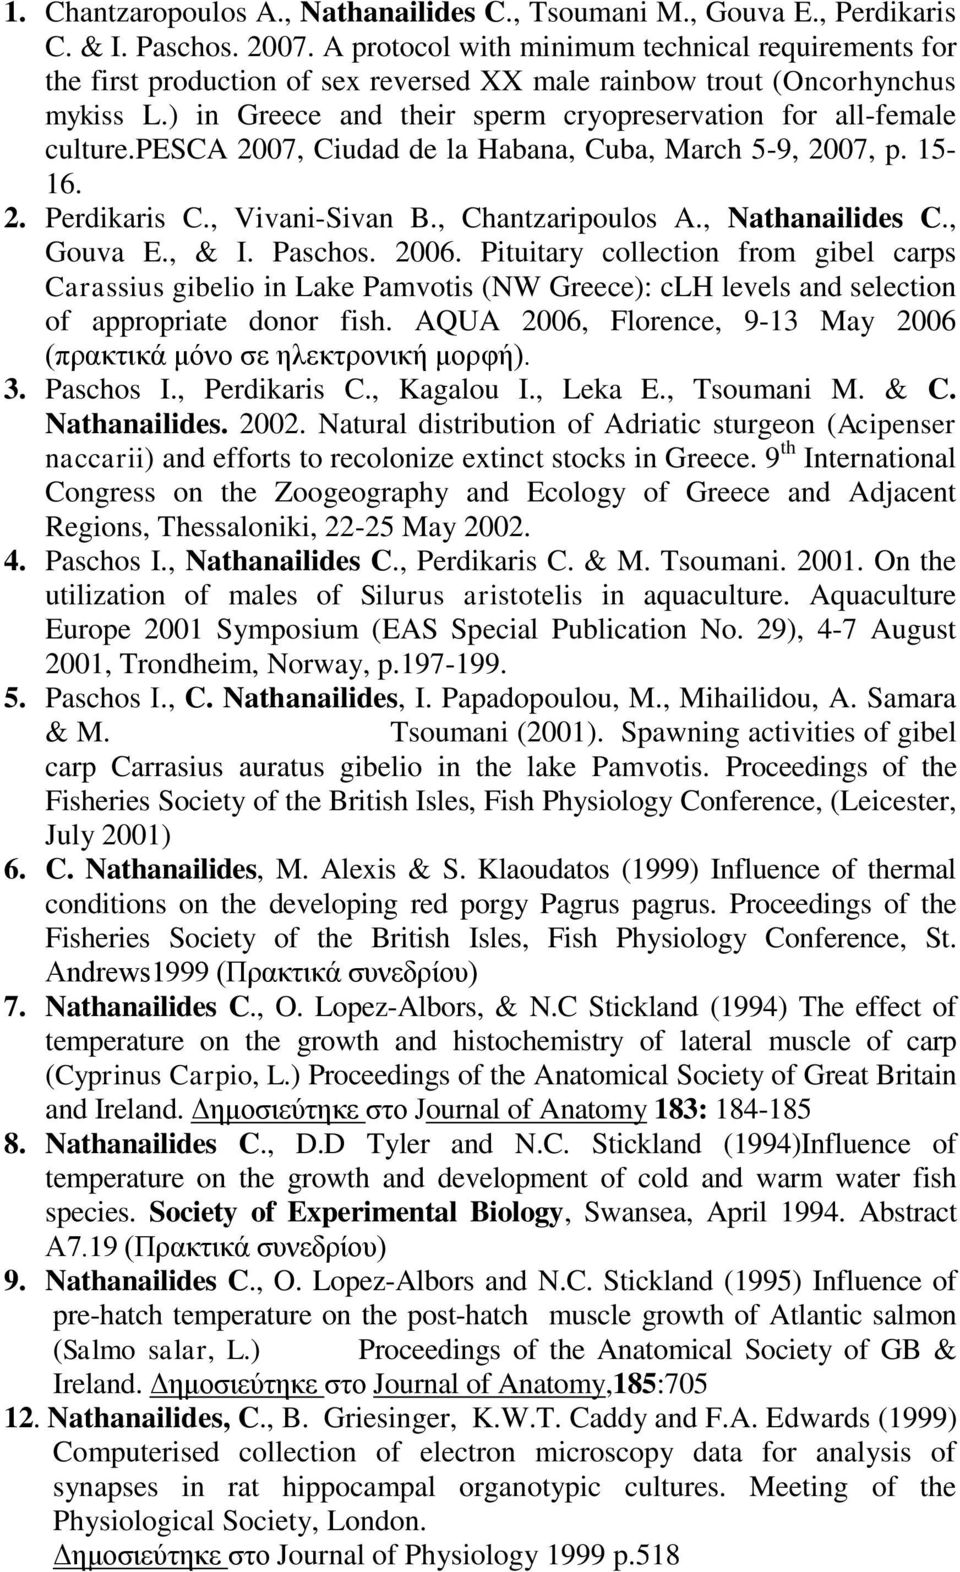 ) in Greece and their sperm cryopreservation for all-female culture.pesca 2007, Ciudad de la Habana, Cuba, March 5-9, 2007, p. 15-16. 2. Perdikaris C., Vivani-Sivan B., Chantzaripoulos A.